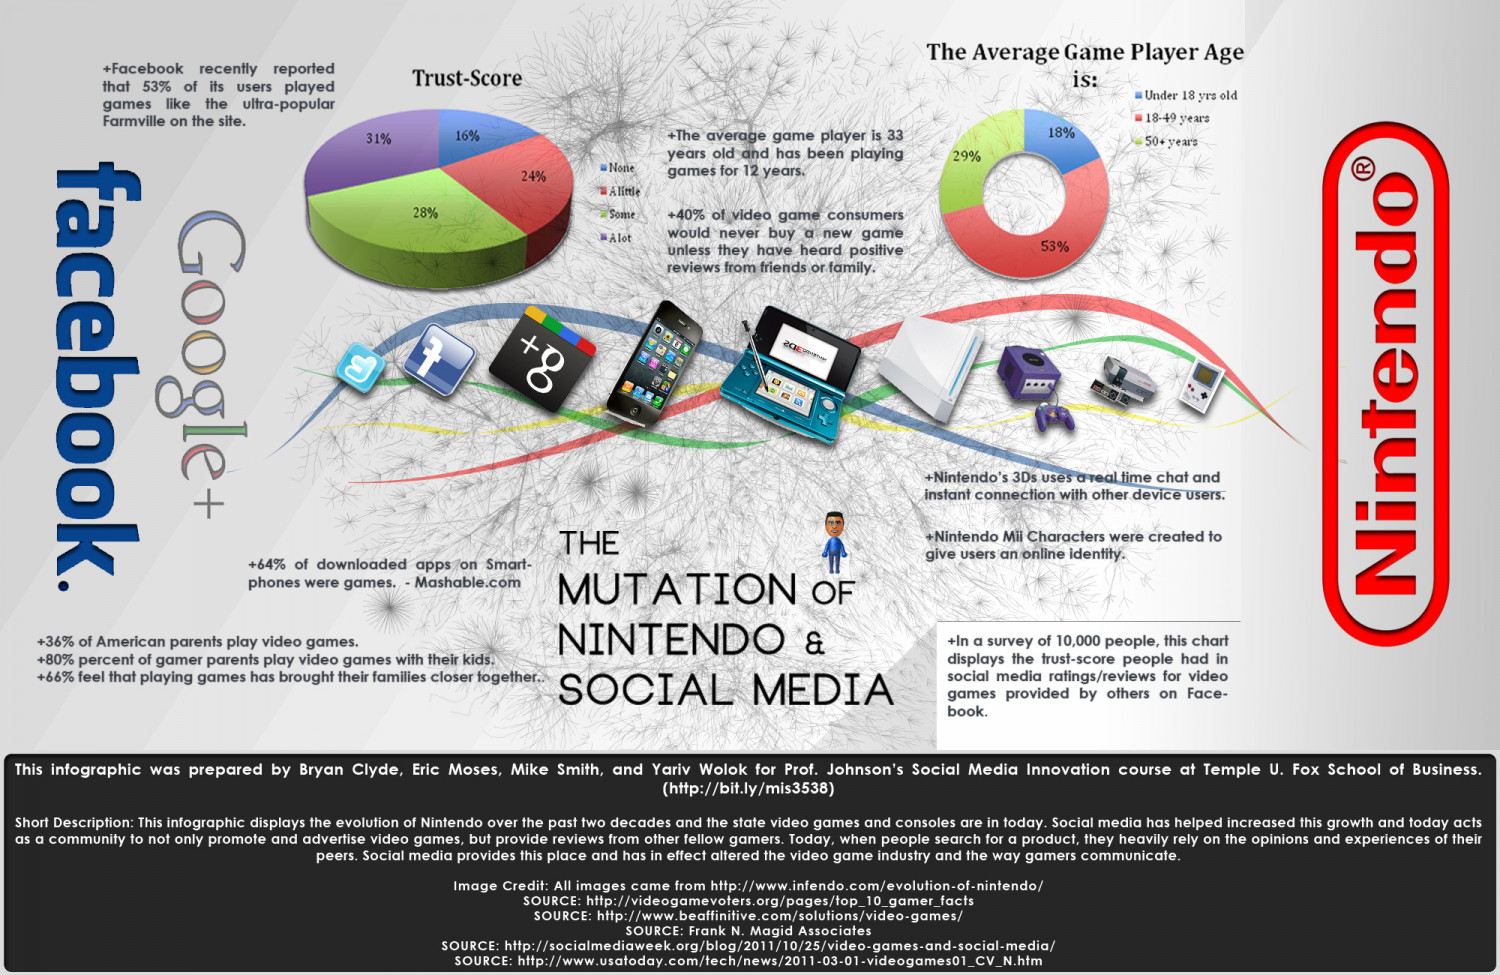 Social Media and The Mutation of Nintendo Infographic